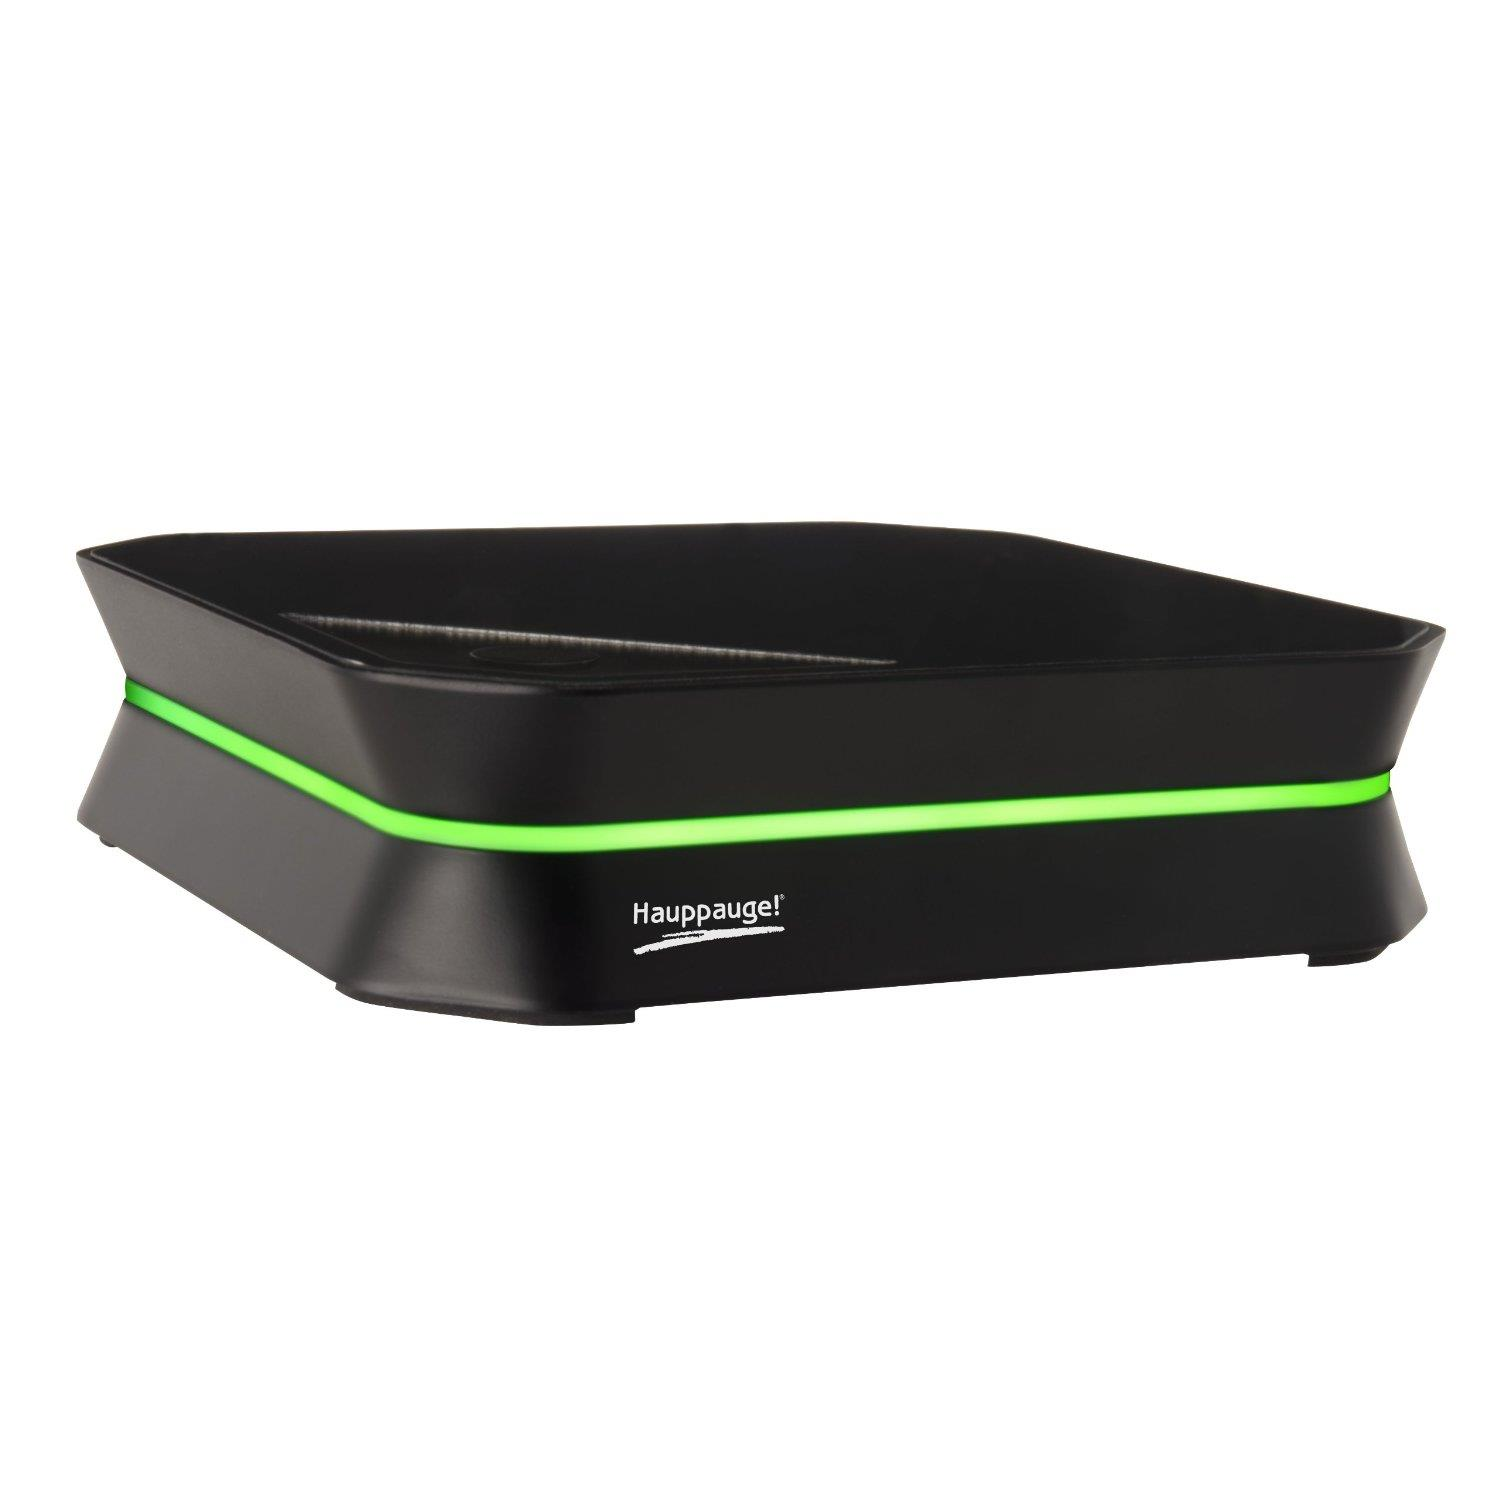 Hauppauge Hd Pvr2 Gaming Edition Enables Recording From Your Xbox